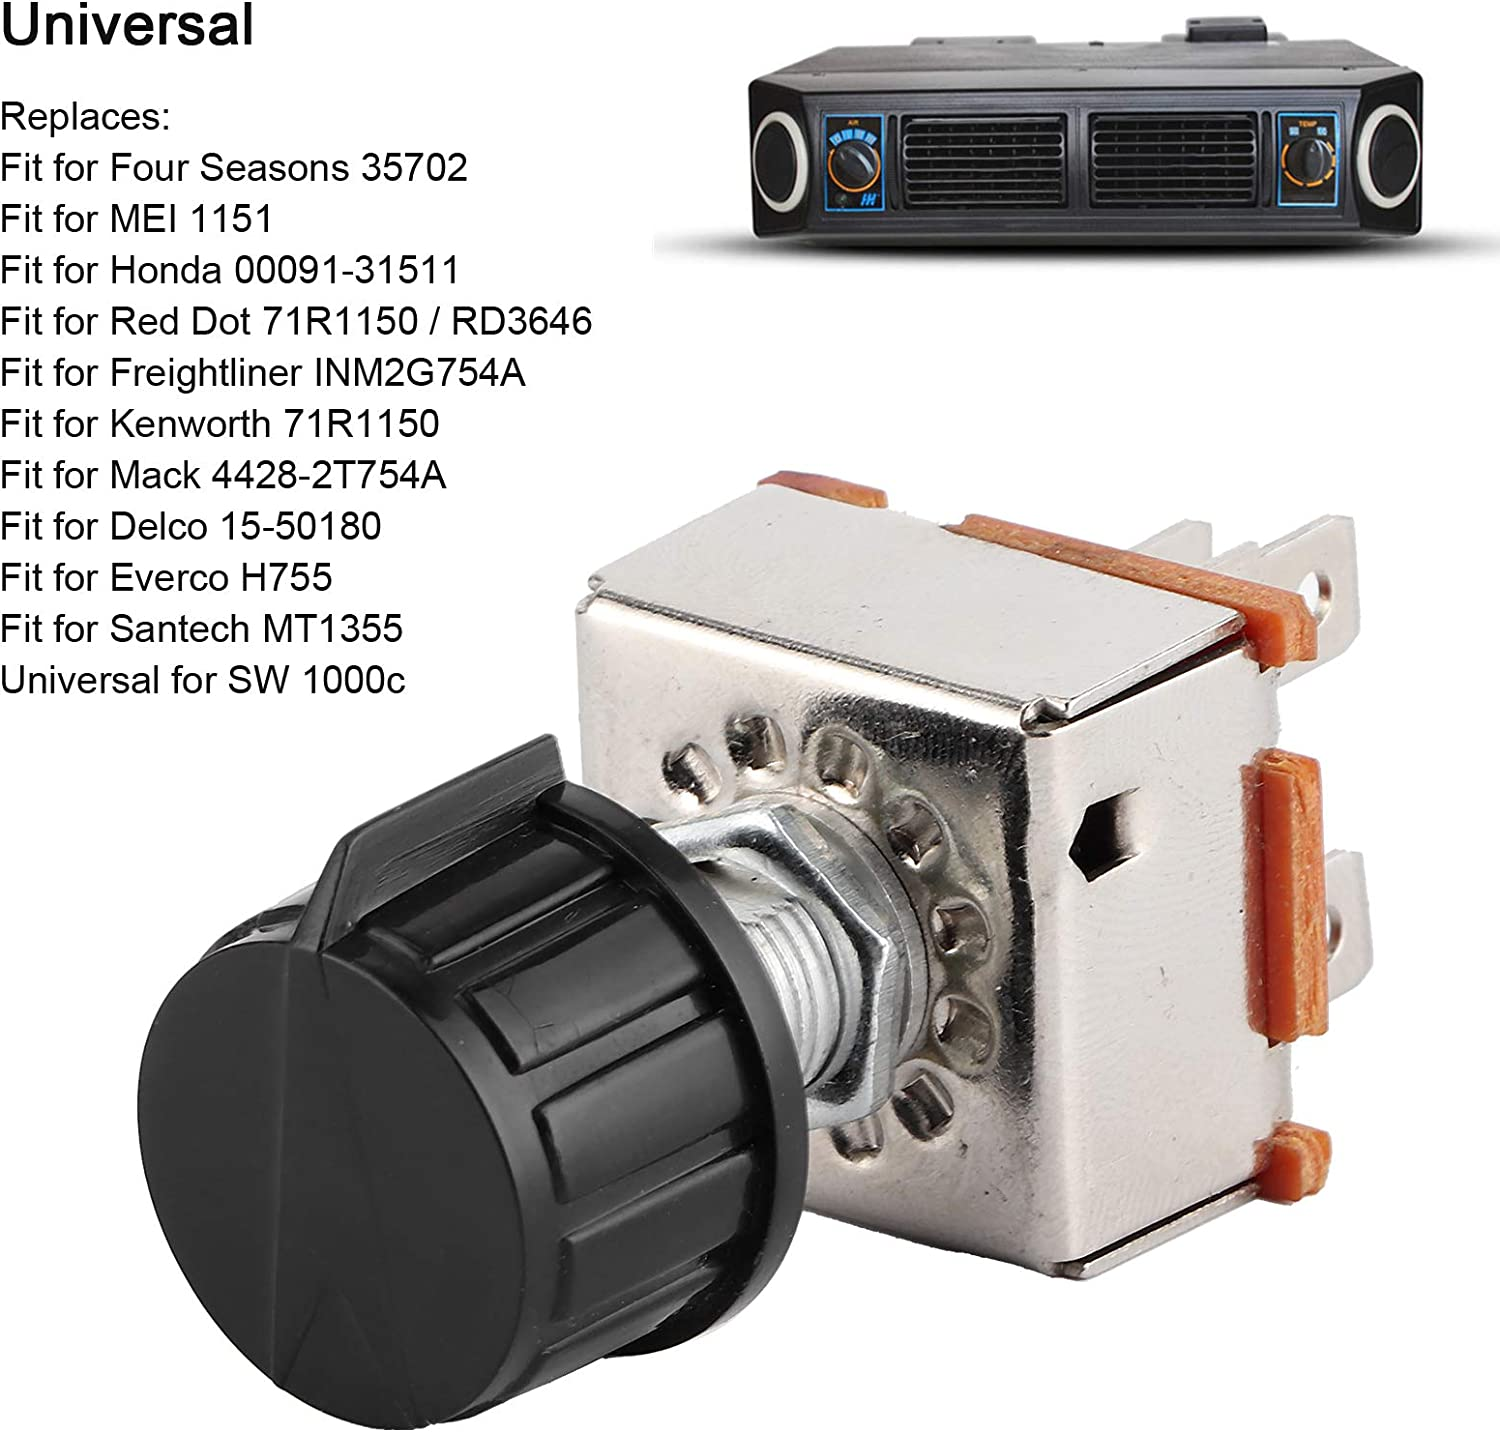 zhuolong Universal AC 3 Speed Blower Switch Air Conditioning Volume Control Rotating W//Plastic Knob